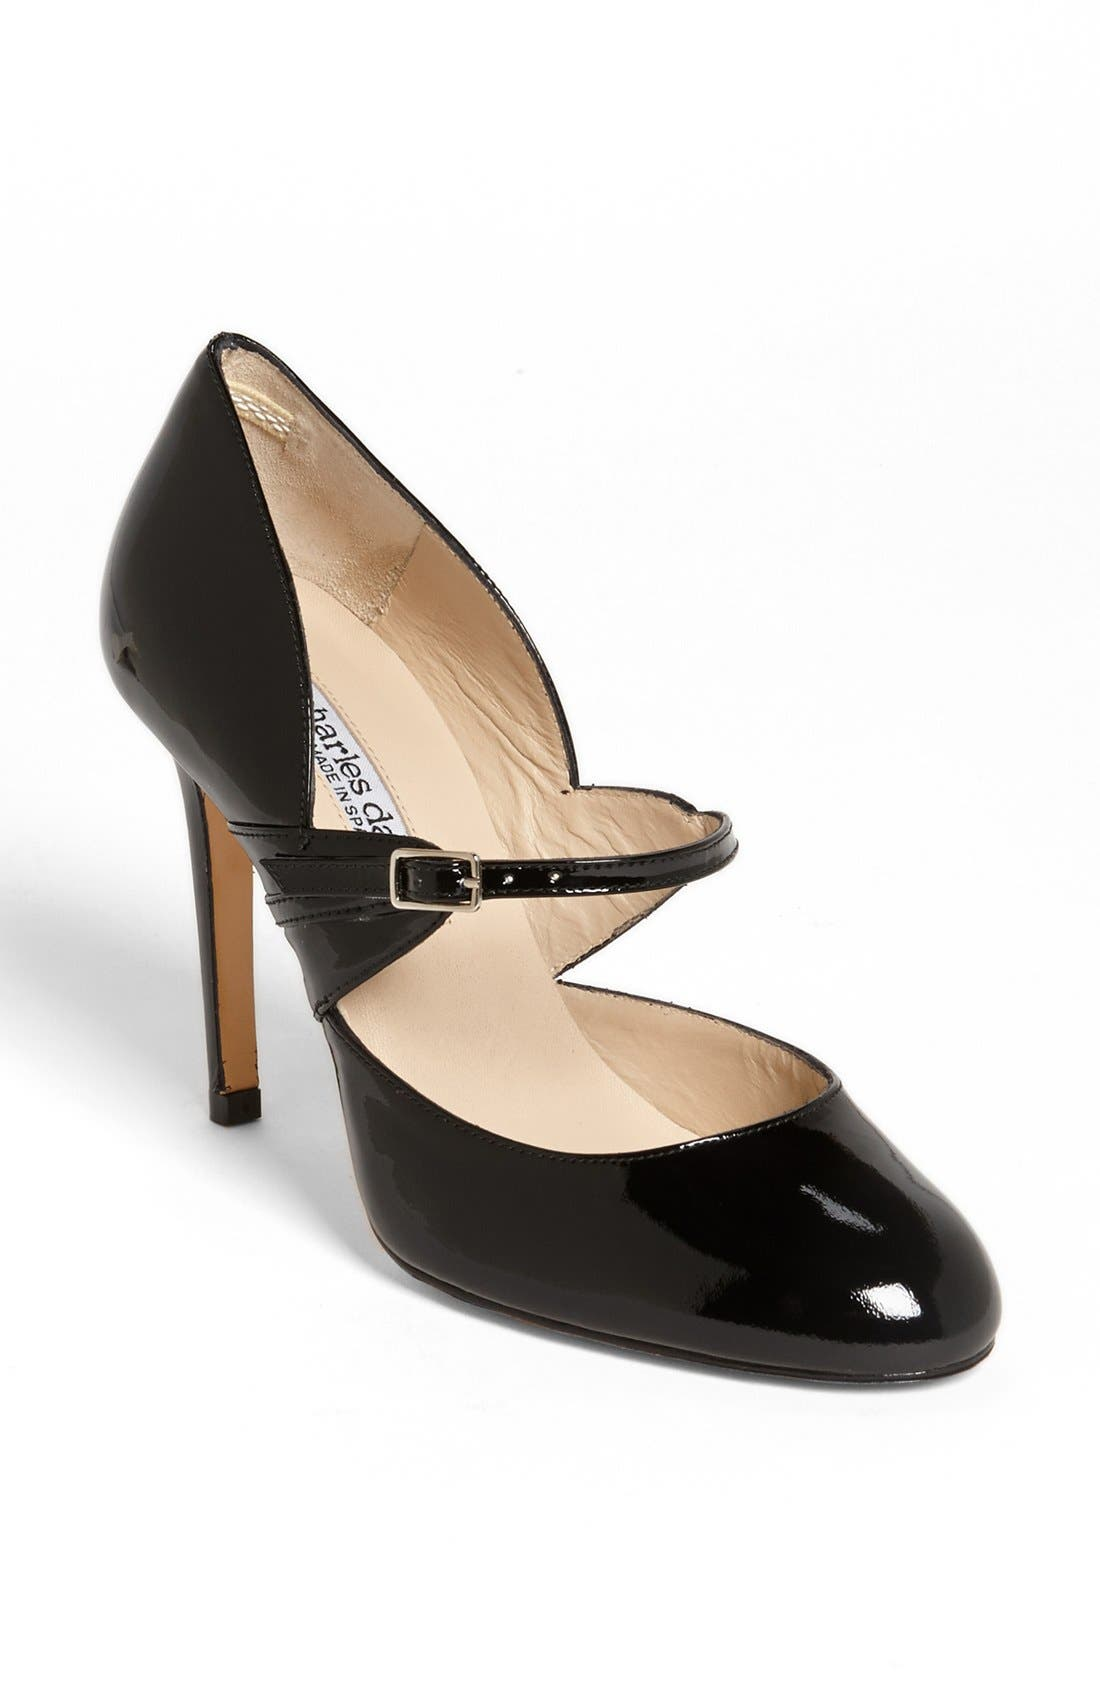 Alternate Image 1 Selected - Charles David 'Valencia' Pump